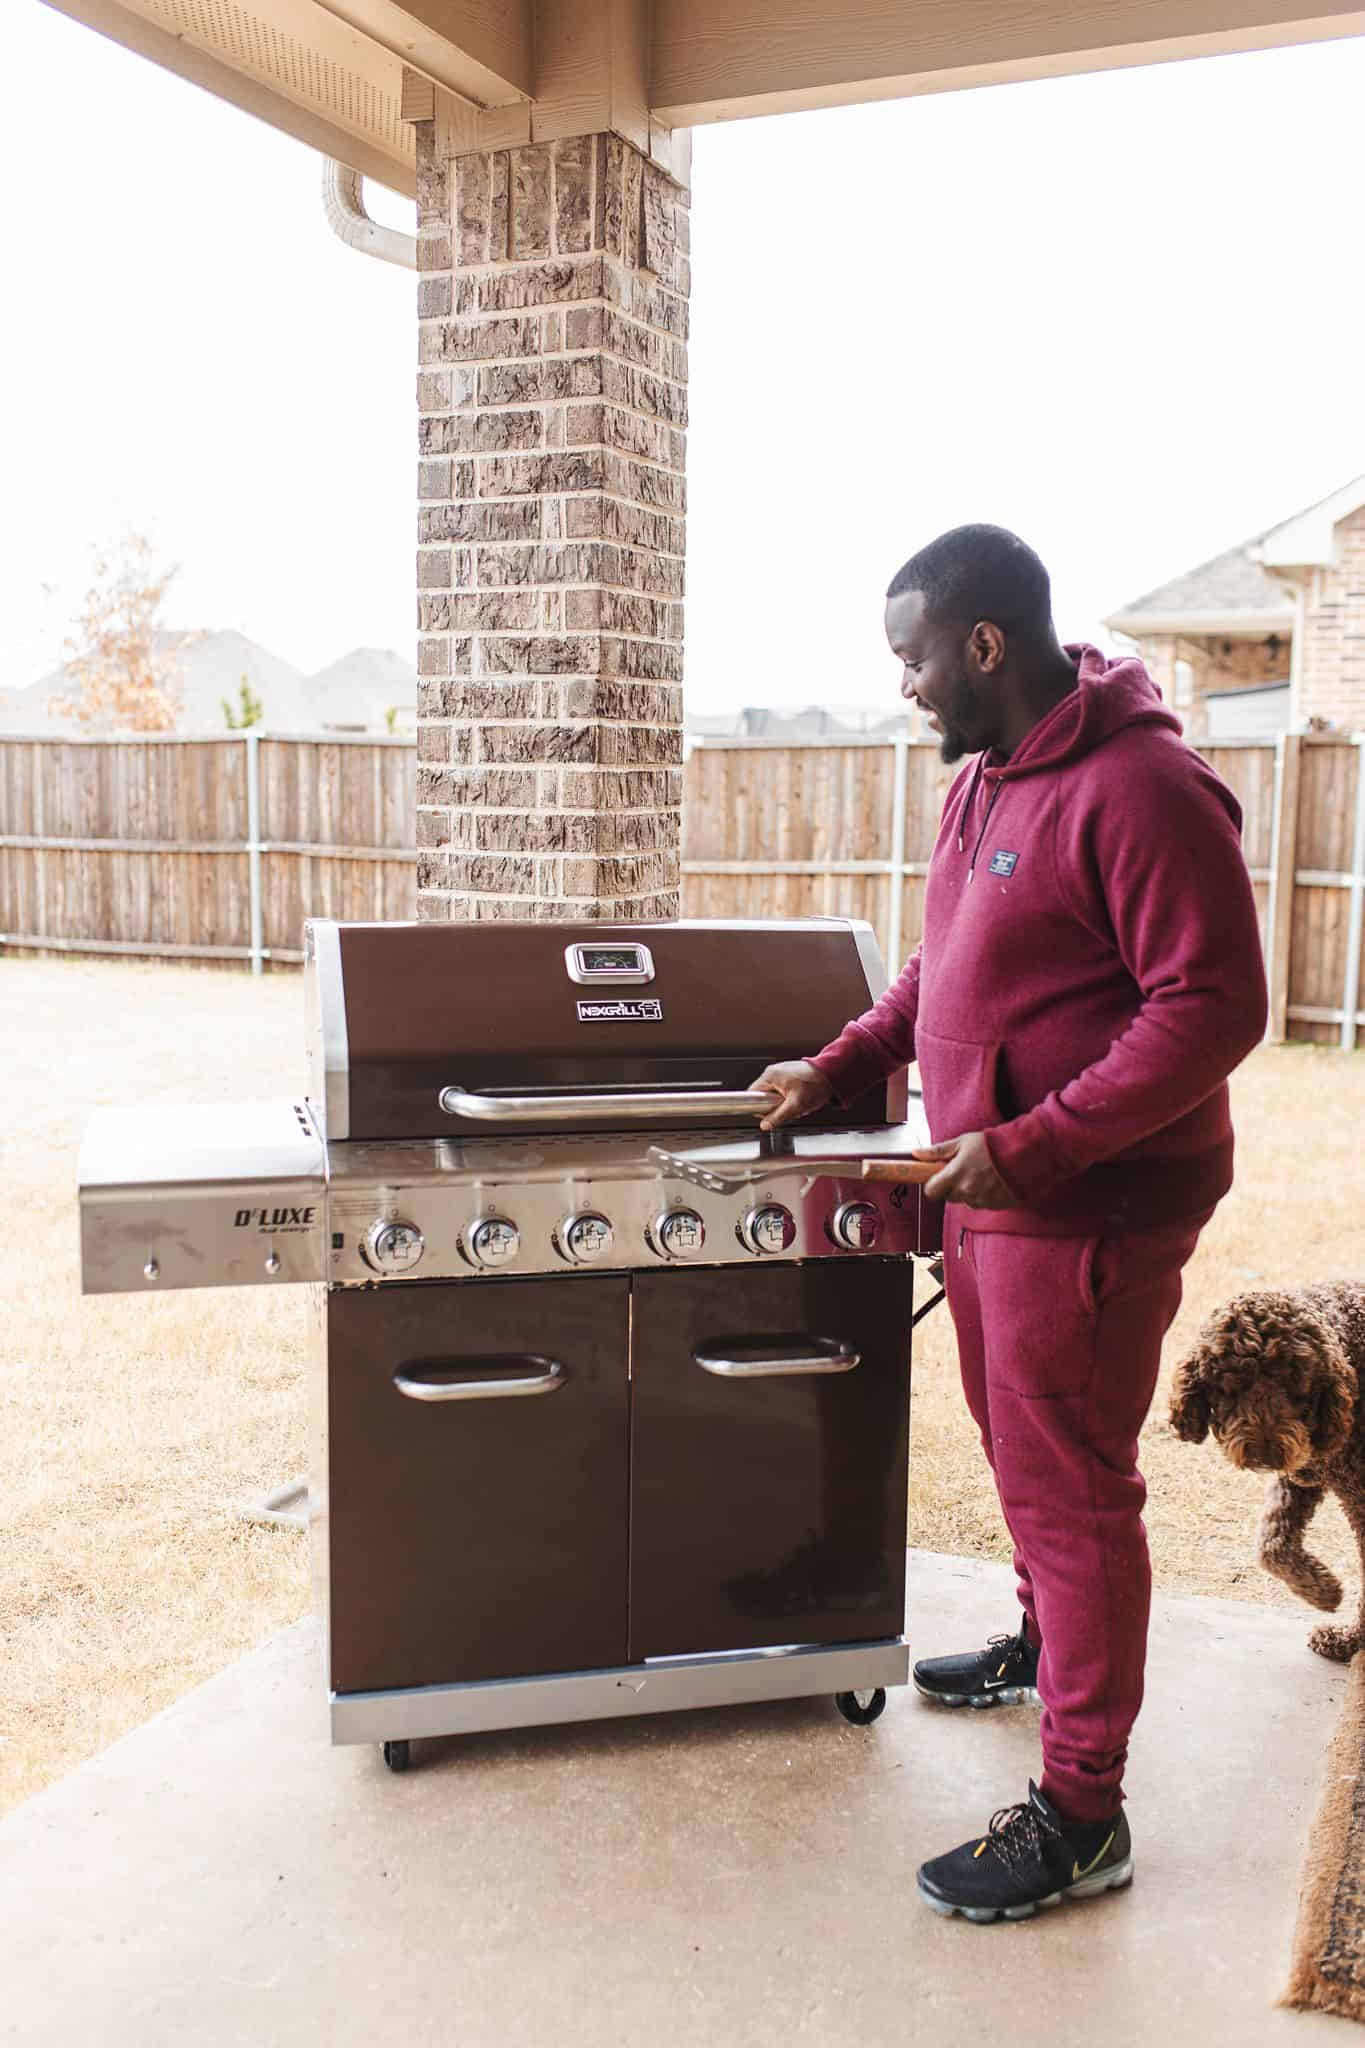 Home Depot Valentine's Day Gifts for Him by popular Dallas lifestyle blog, Glamorous Versatility: image of a man opening a Nexgrill BBQ.